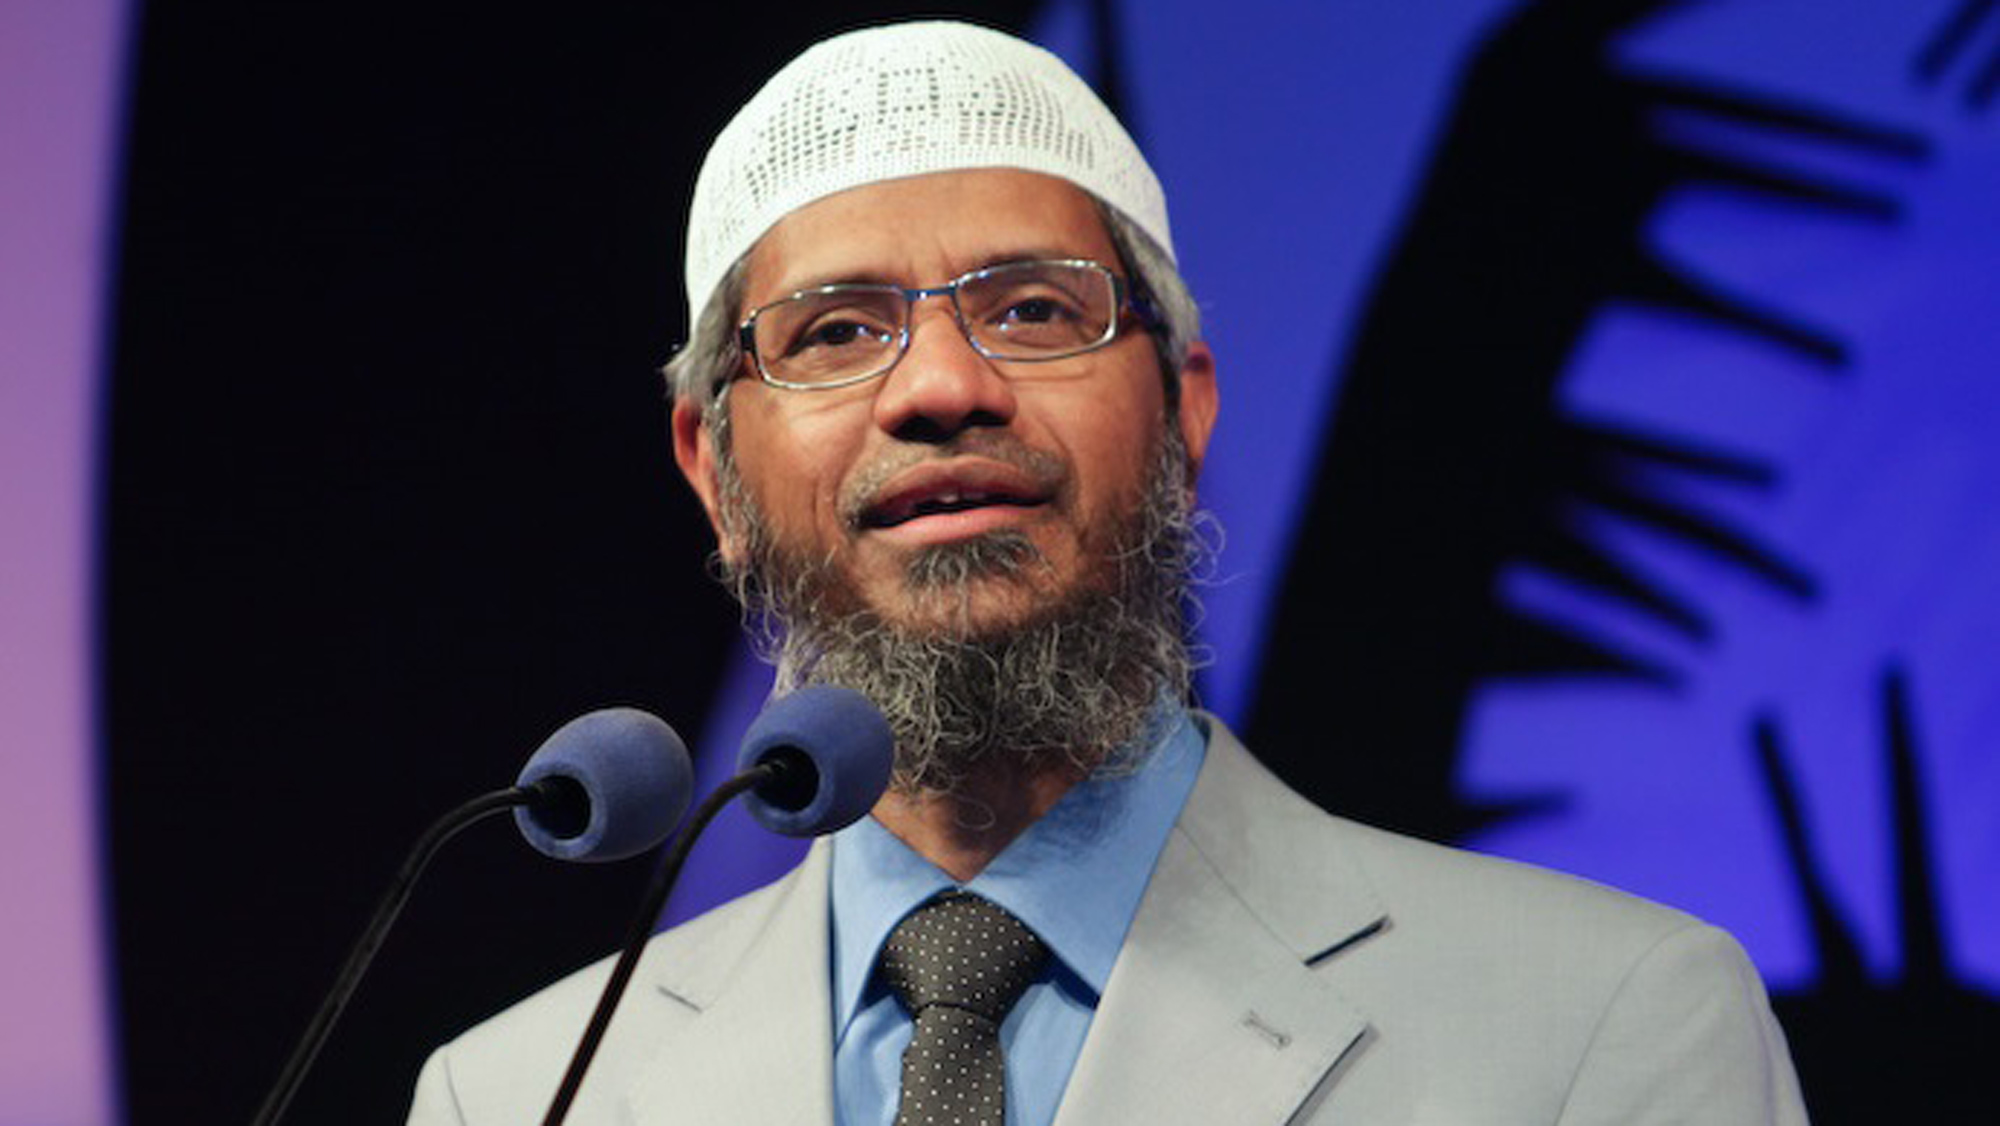 Interpol rejects India's request to issue red corner notice against Zakir Naik